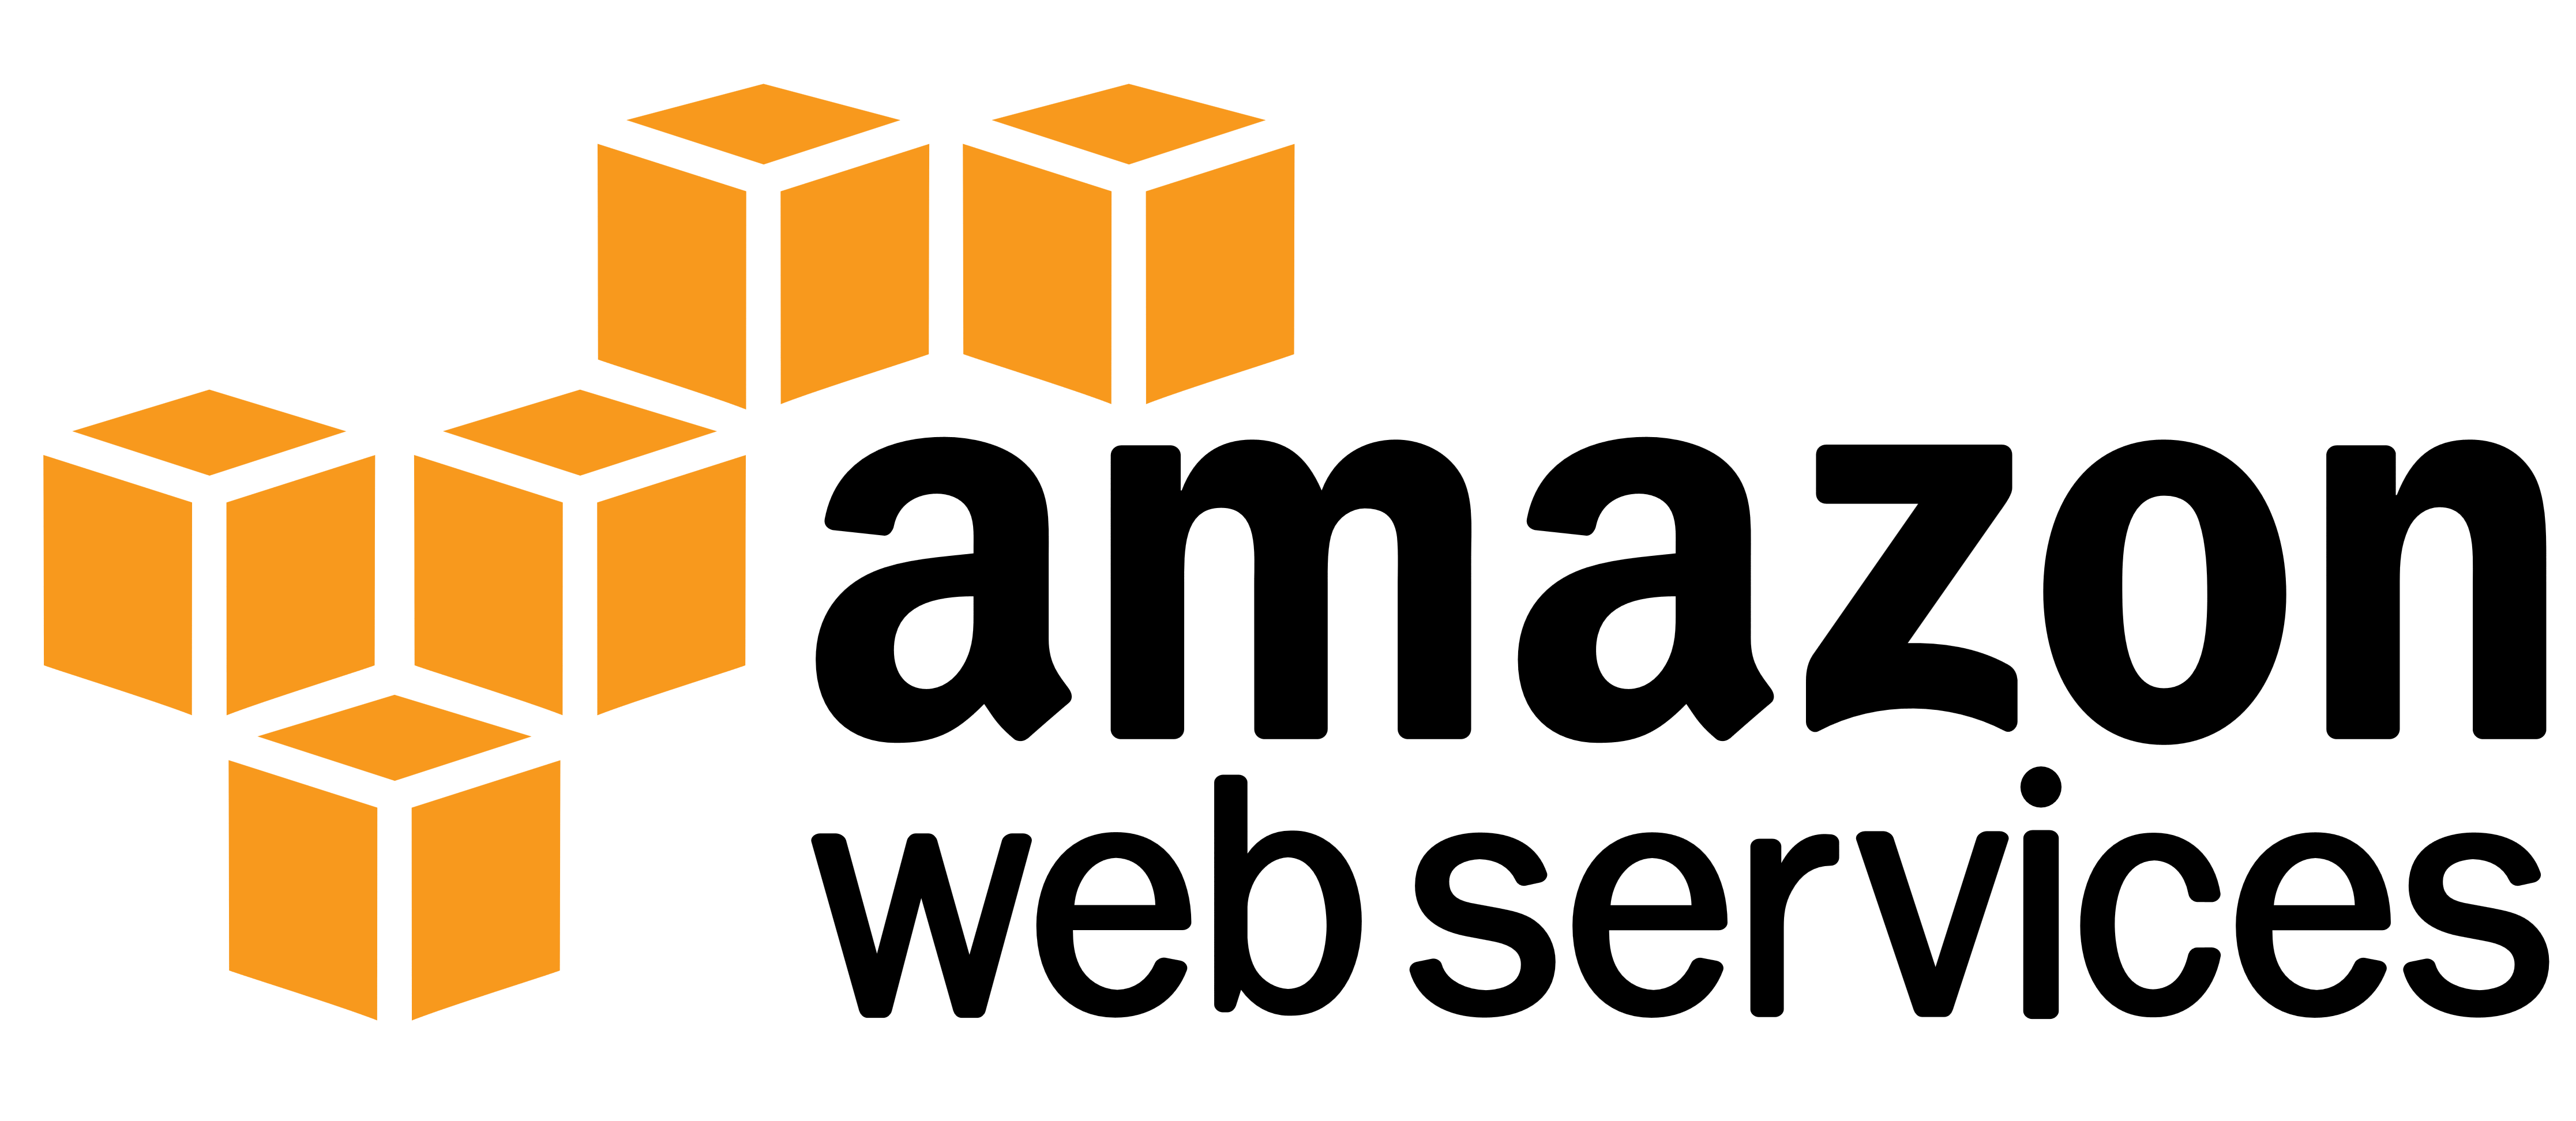 How To Install An Ssl Certificate In Amazon Web Service Aws